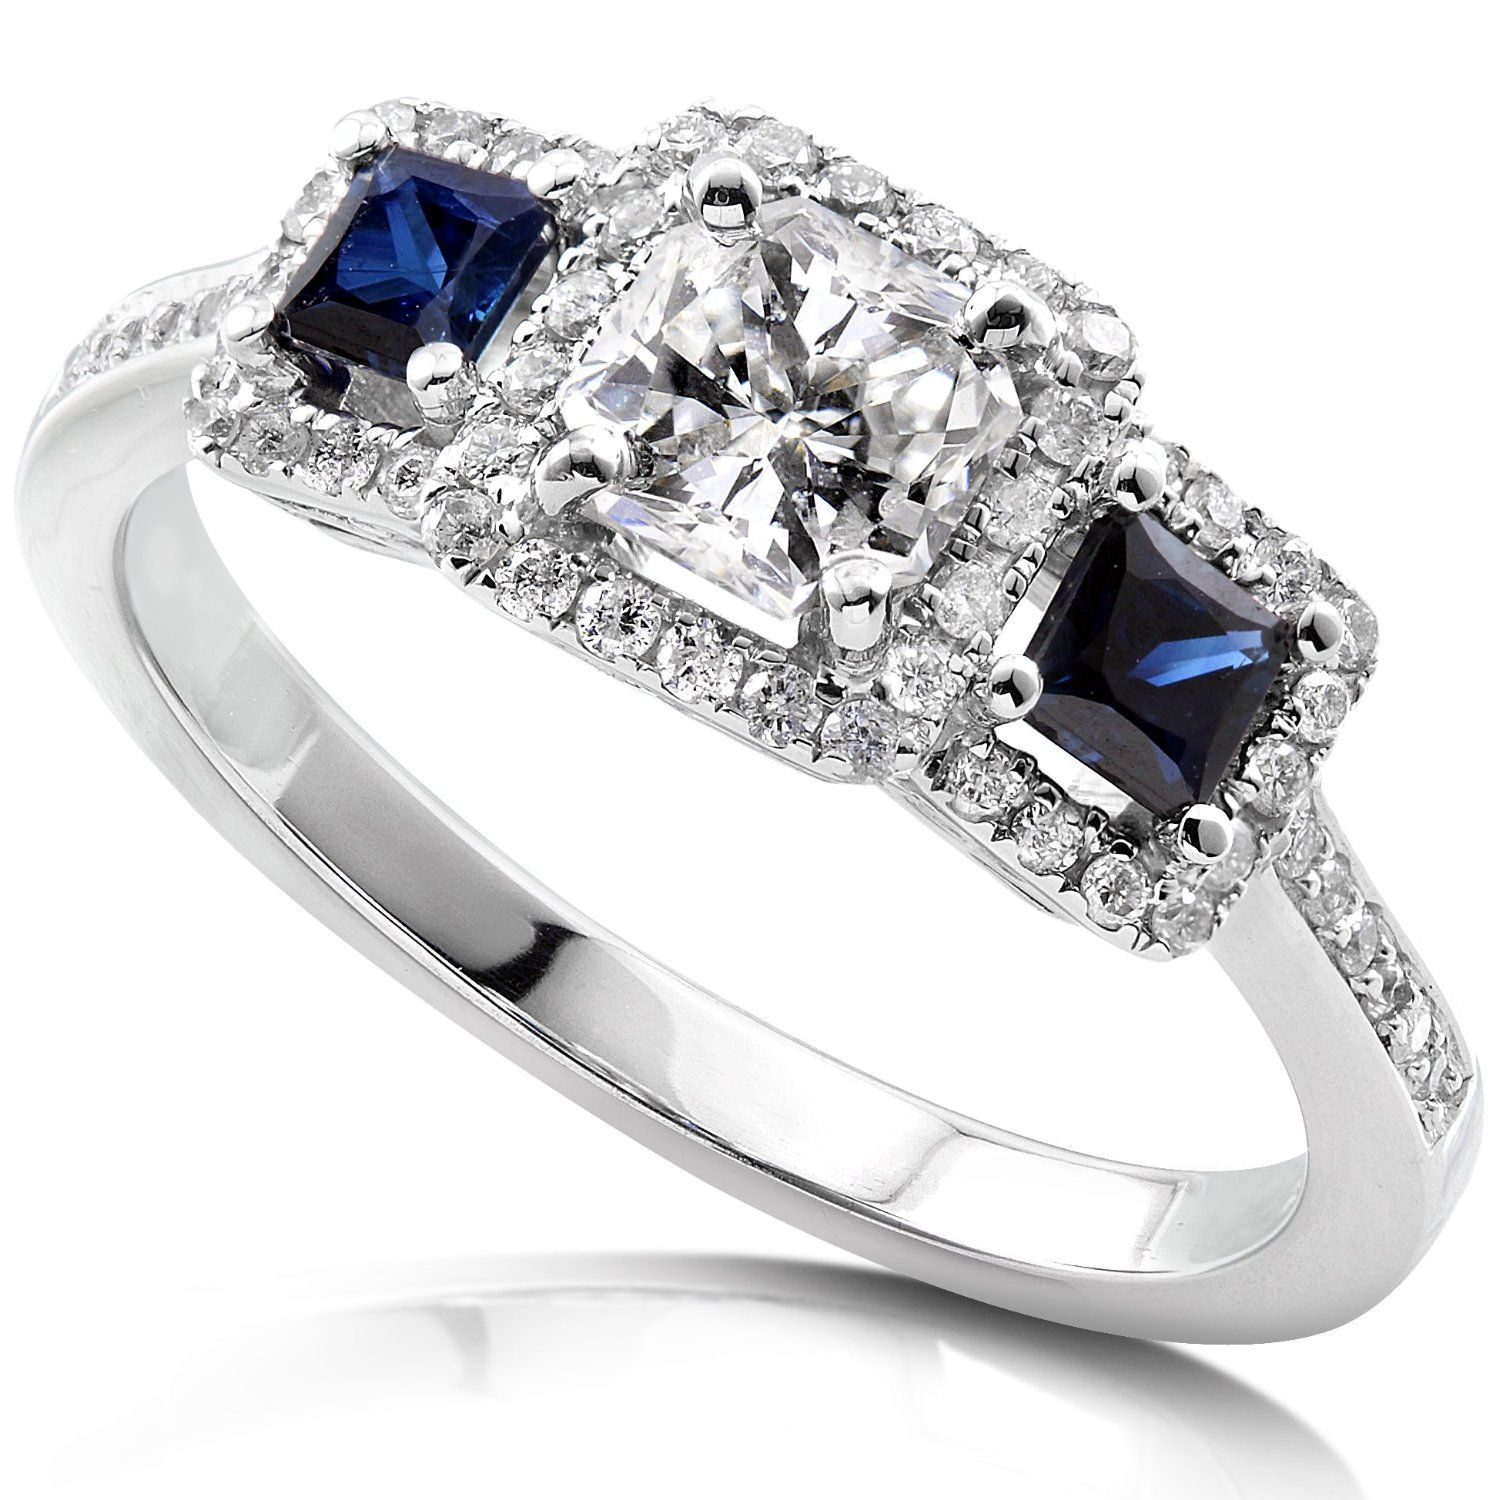 band ring gold diamond and rings pave wedding annivery sapphire half thin rose eternity